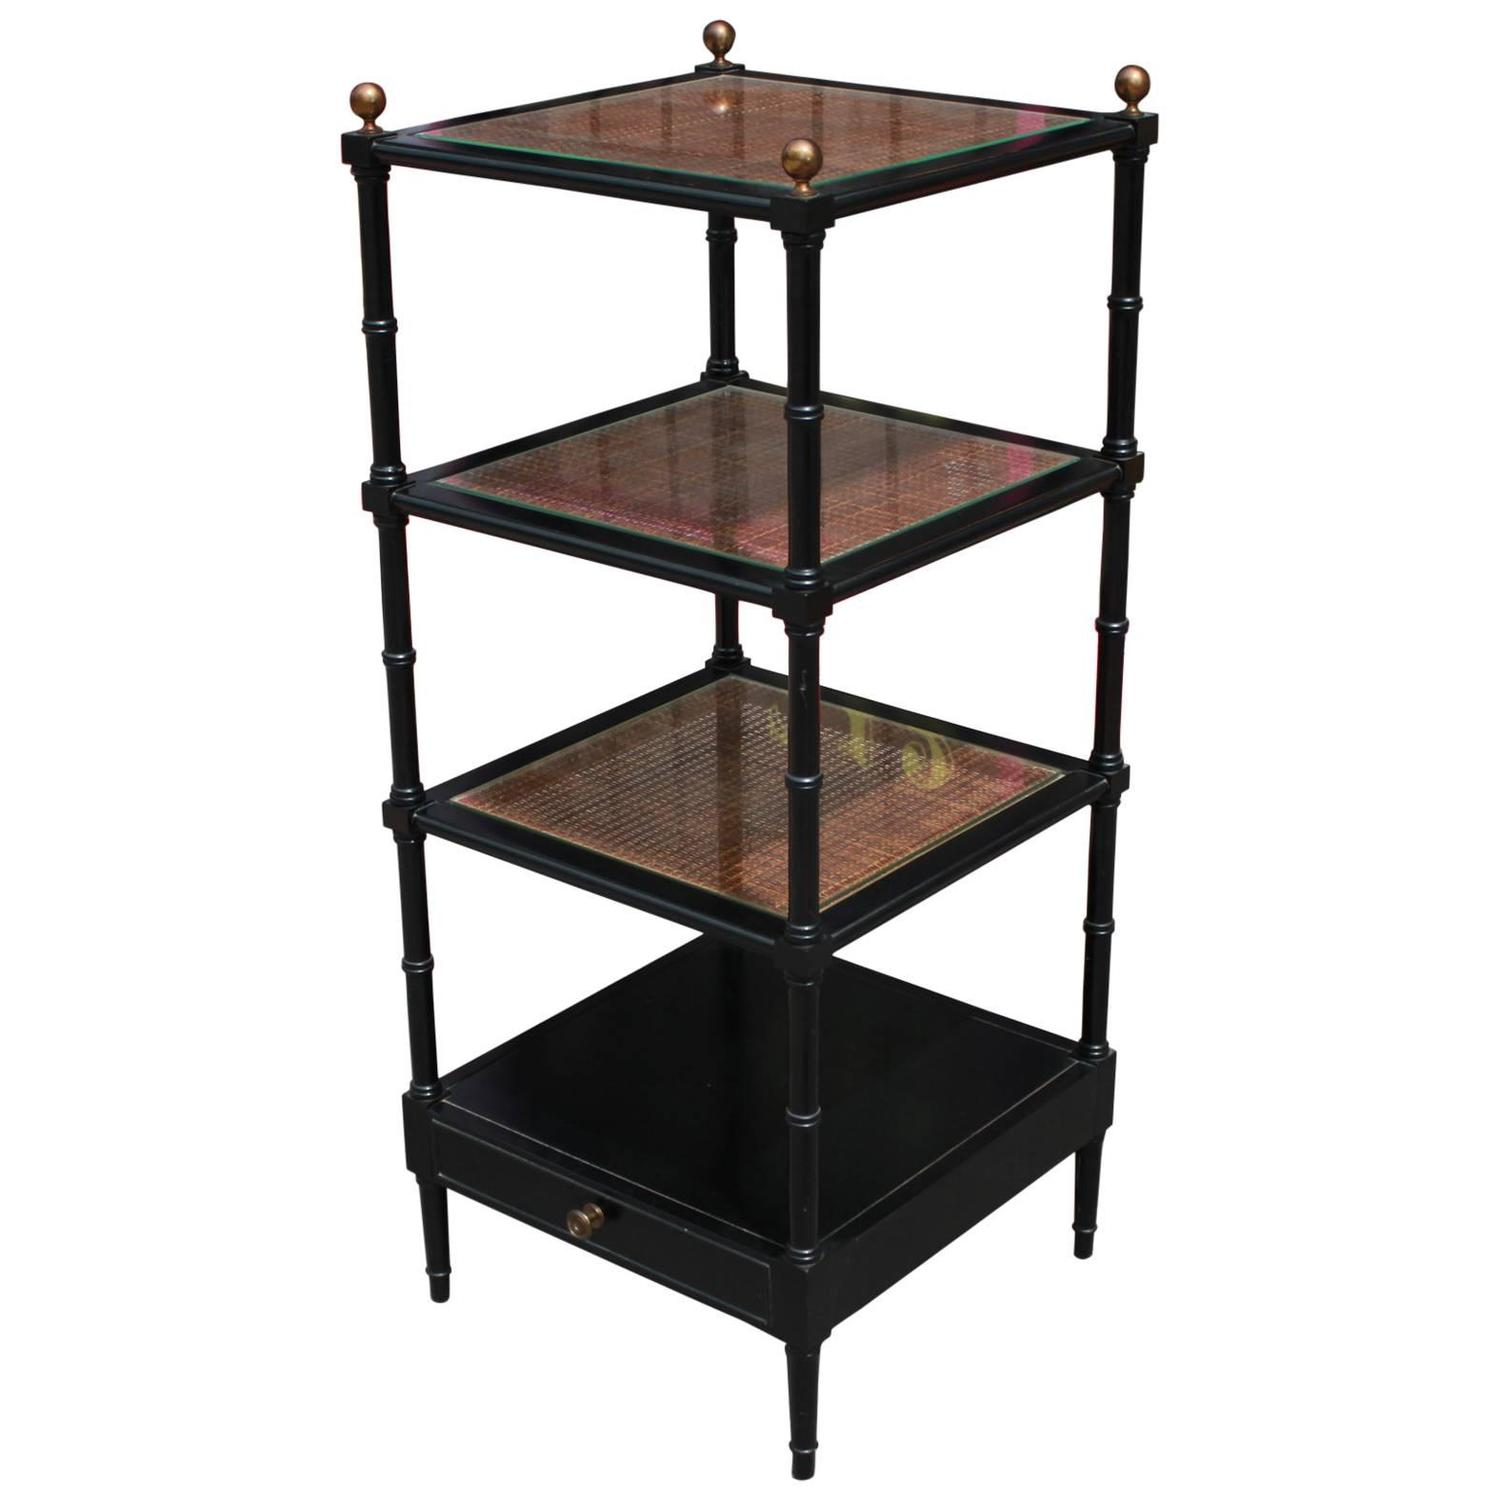 Square Black Lacquer And Rattan Faux Bamboo Modern Etagere Bookshelf For  Sale At 1stdibs